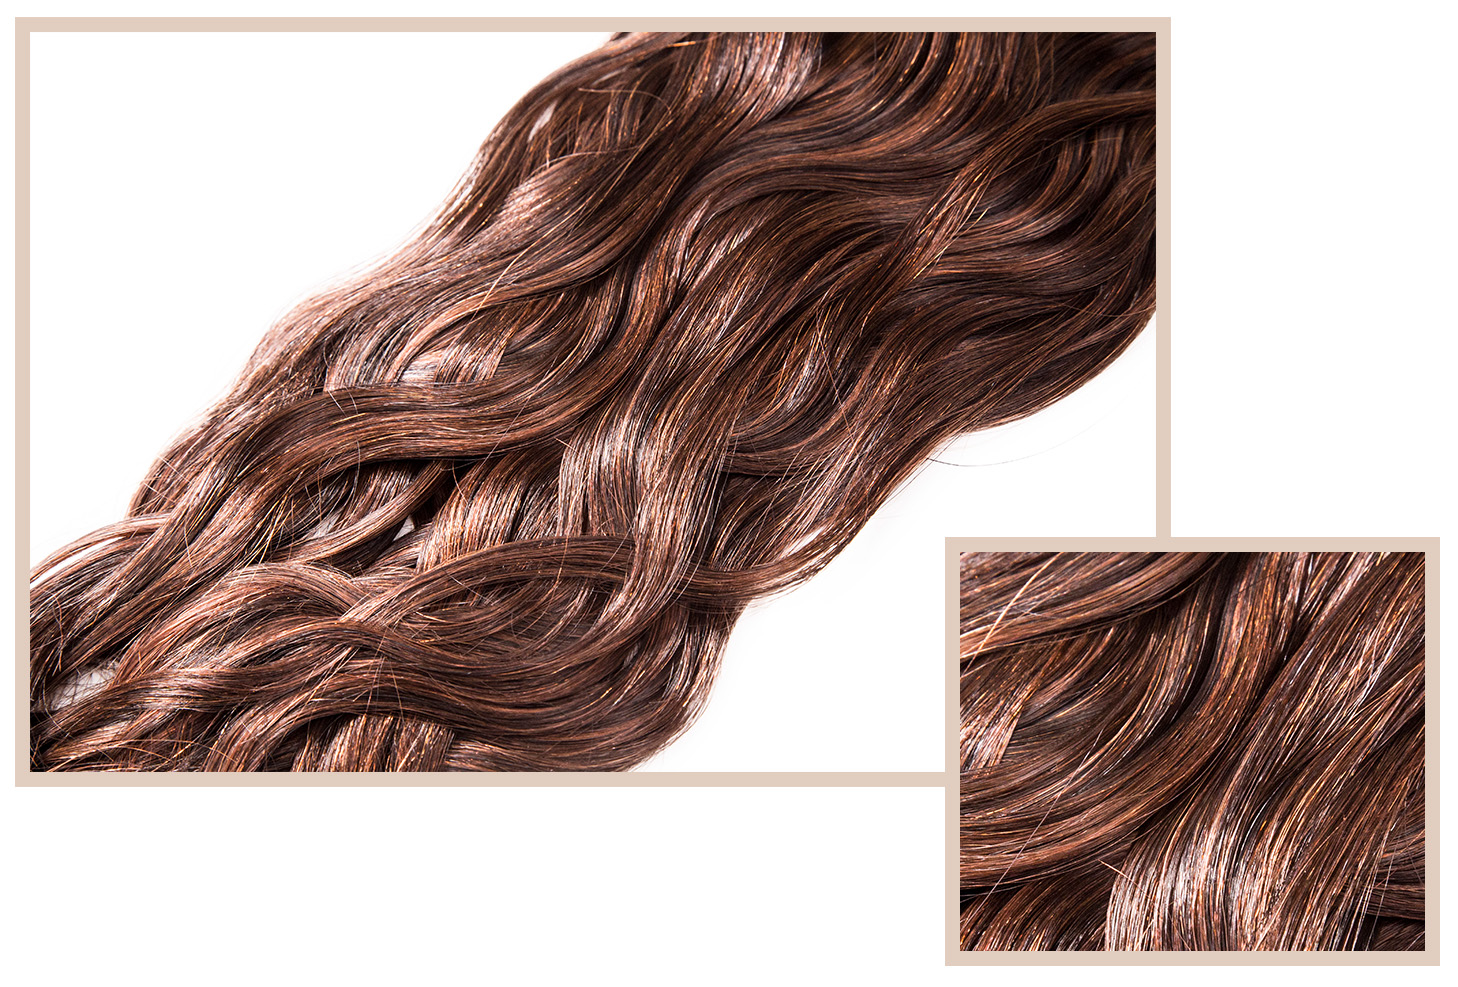 SOFT WAVE - Available in Classic CollectionBeautiful soft, wavy texture with lots of body and bounce. Beautifully relaxed delivering endless possibilities and manipulation for styling. An ideal wavy style for those wanting natural body. Can be curled for more depth and texture, or straighten for a sleek and modern look.